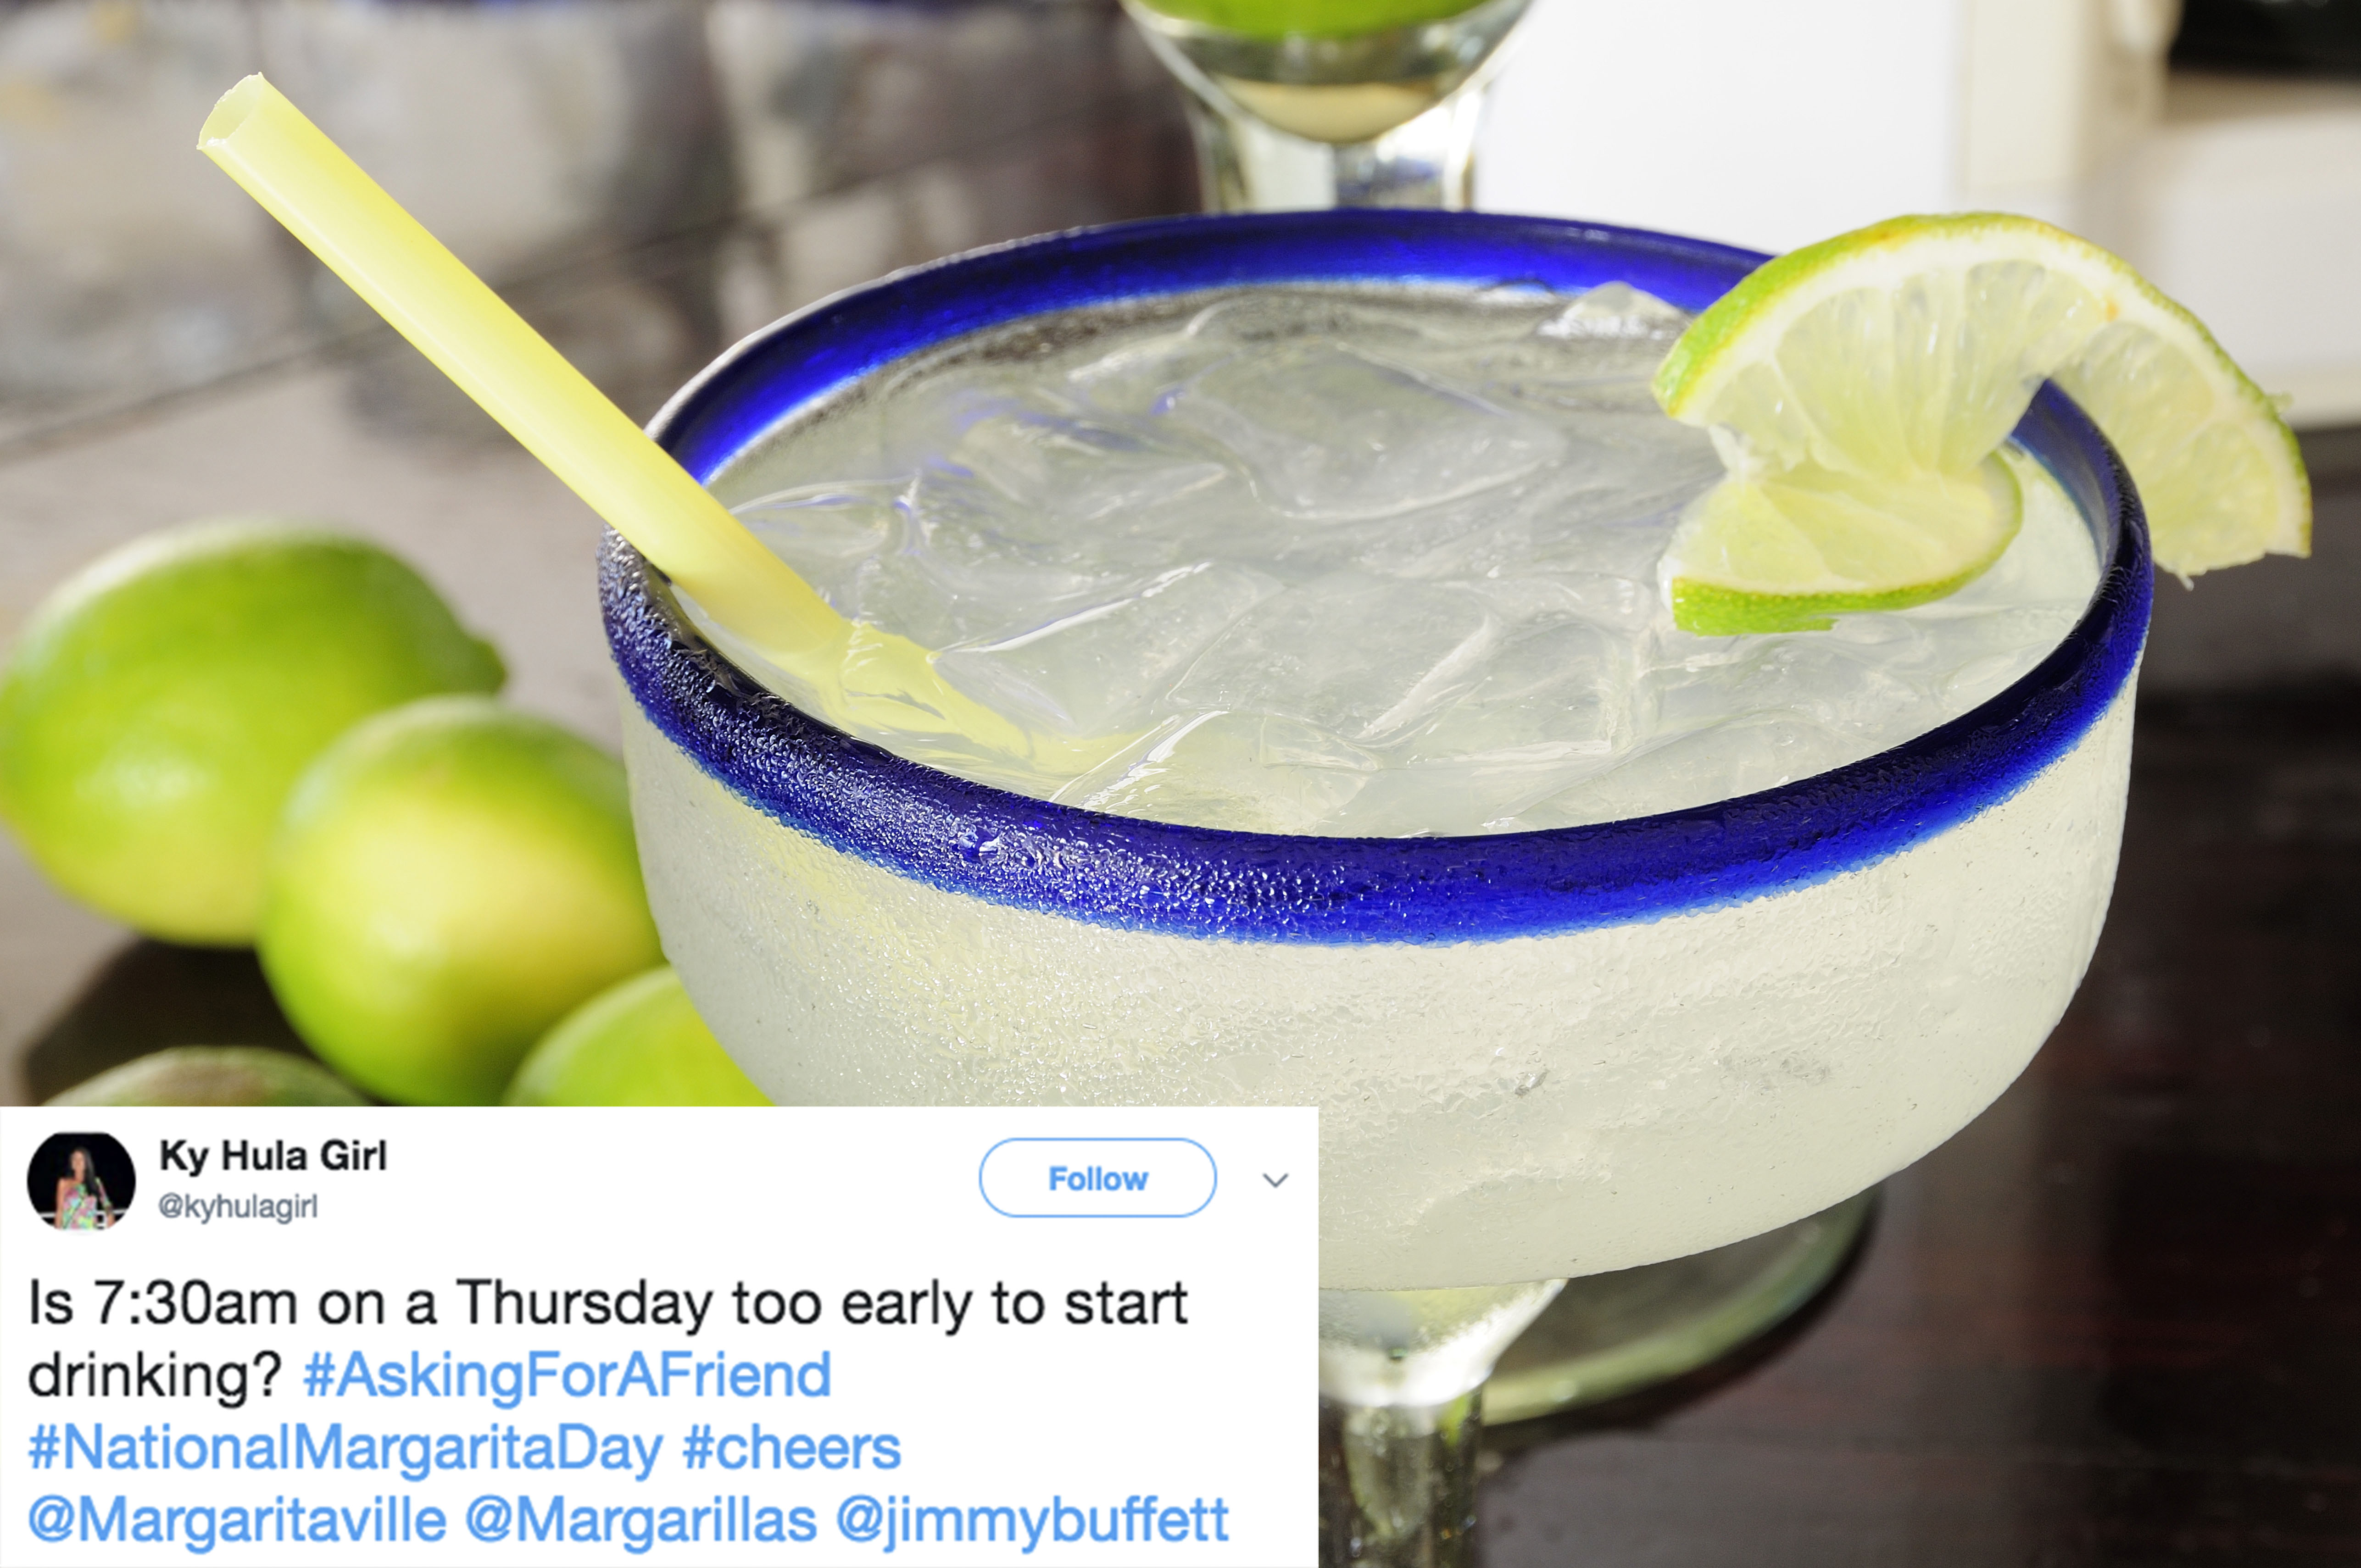 It's National Margarita Day, so here are the best celebratory memes to cheers to